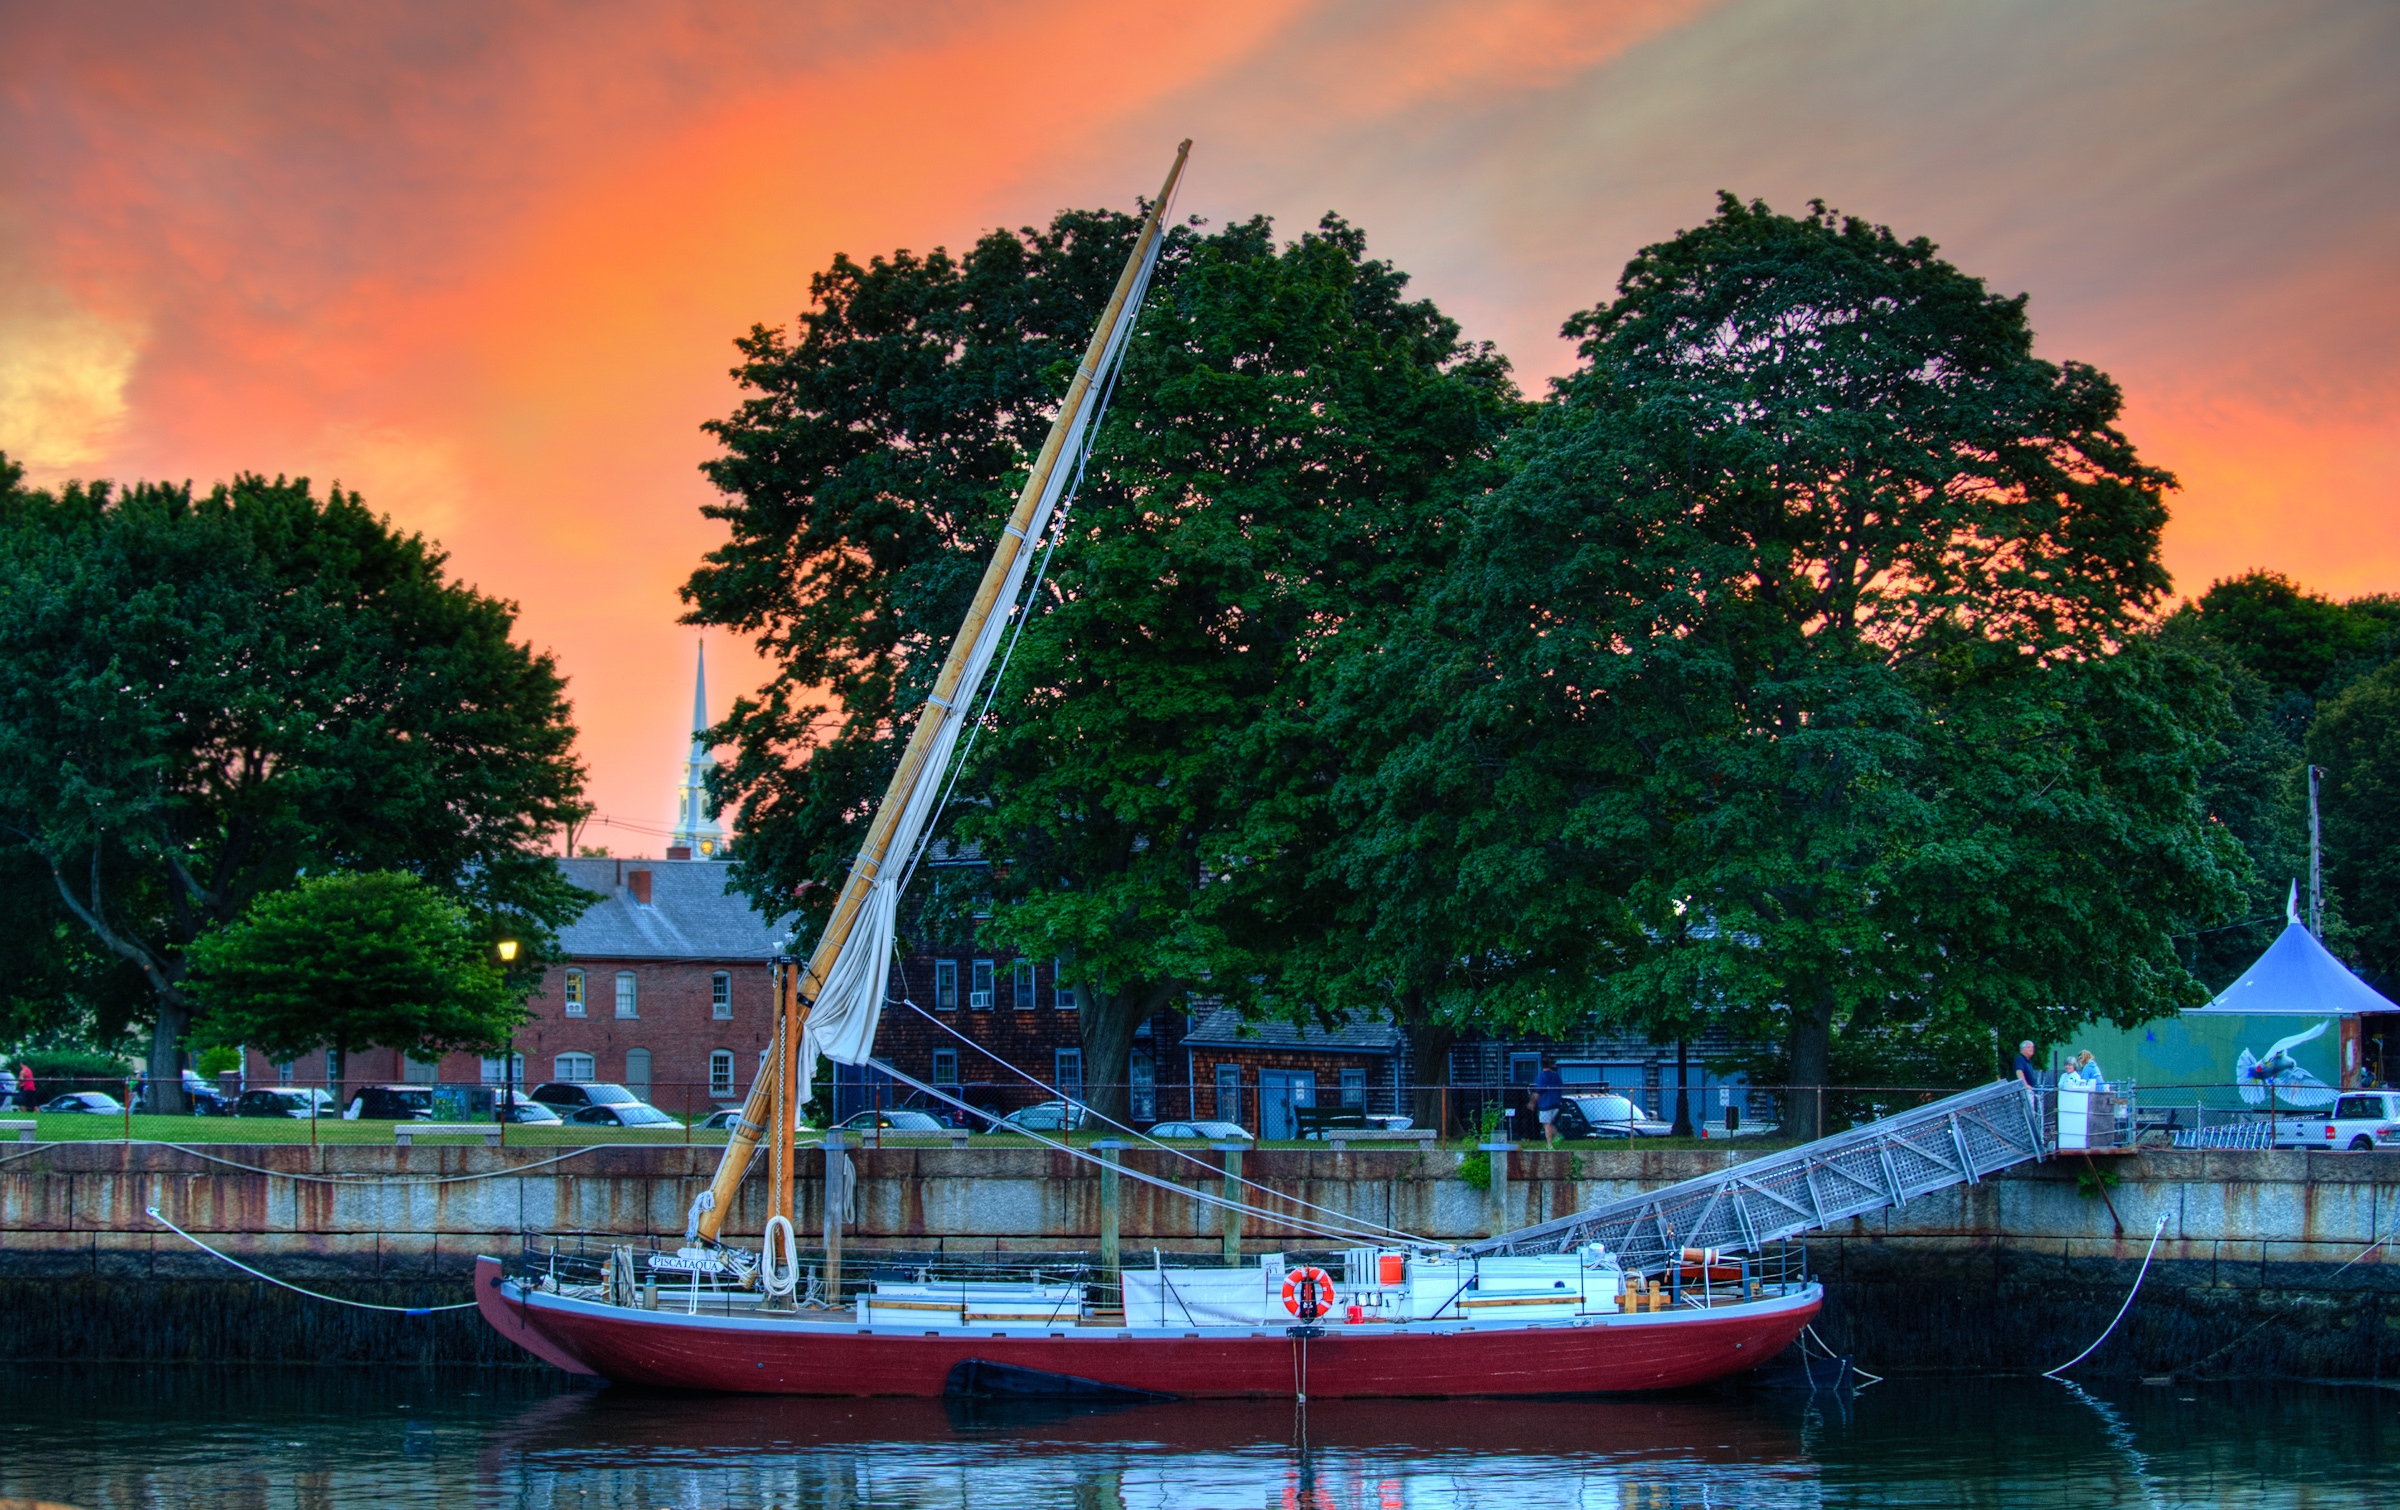 The gundalow Piscataqua sits docked in front of Prescott Park in Portsmouth NH at sunset. The steeple of the North Church is illuminated in the background by lights that have just come on.